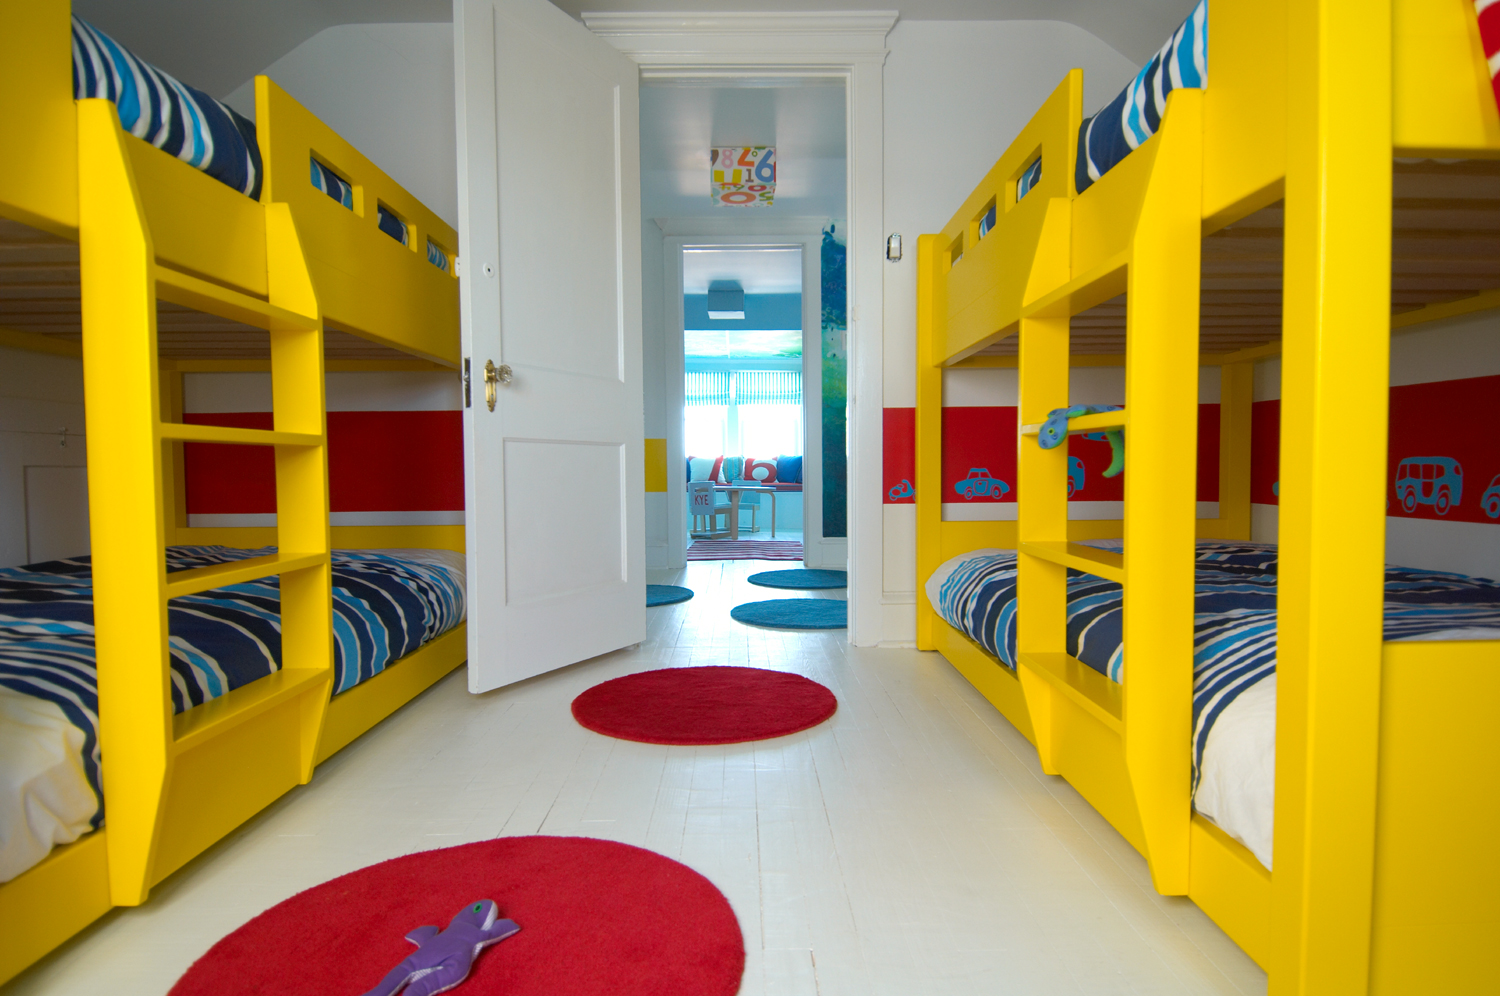 Cool Bedrooms With Bunk Beds 30 Cool And Playful Bunk Beds Ideas